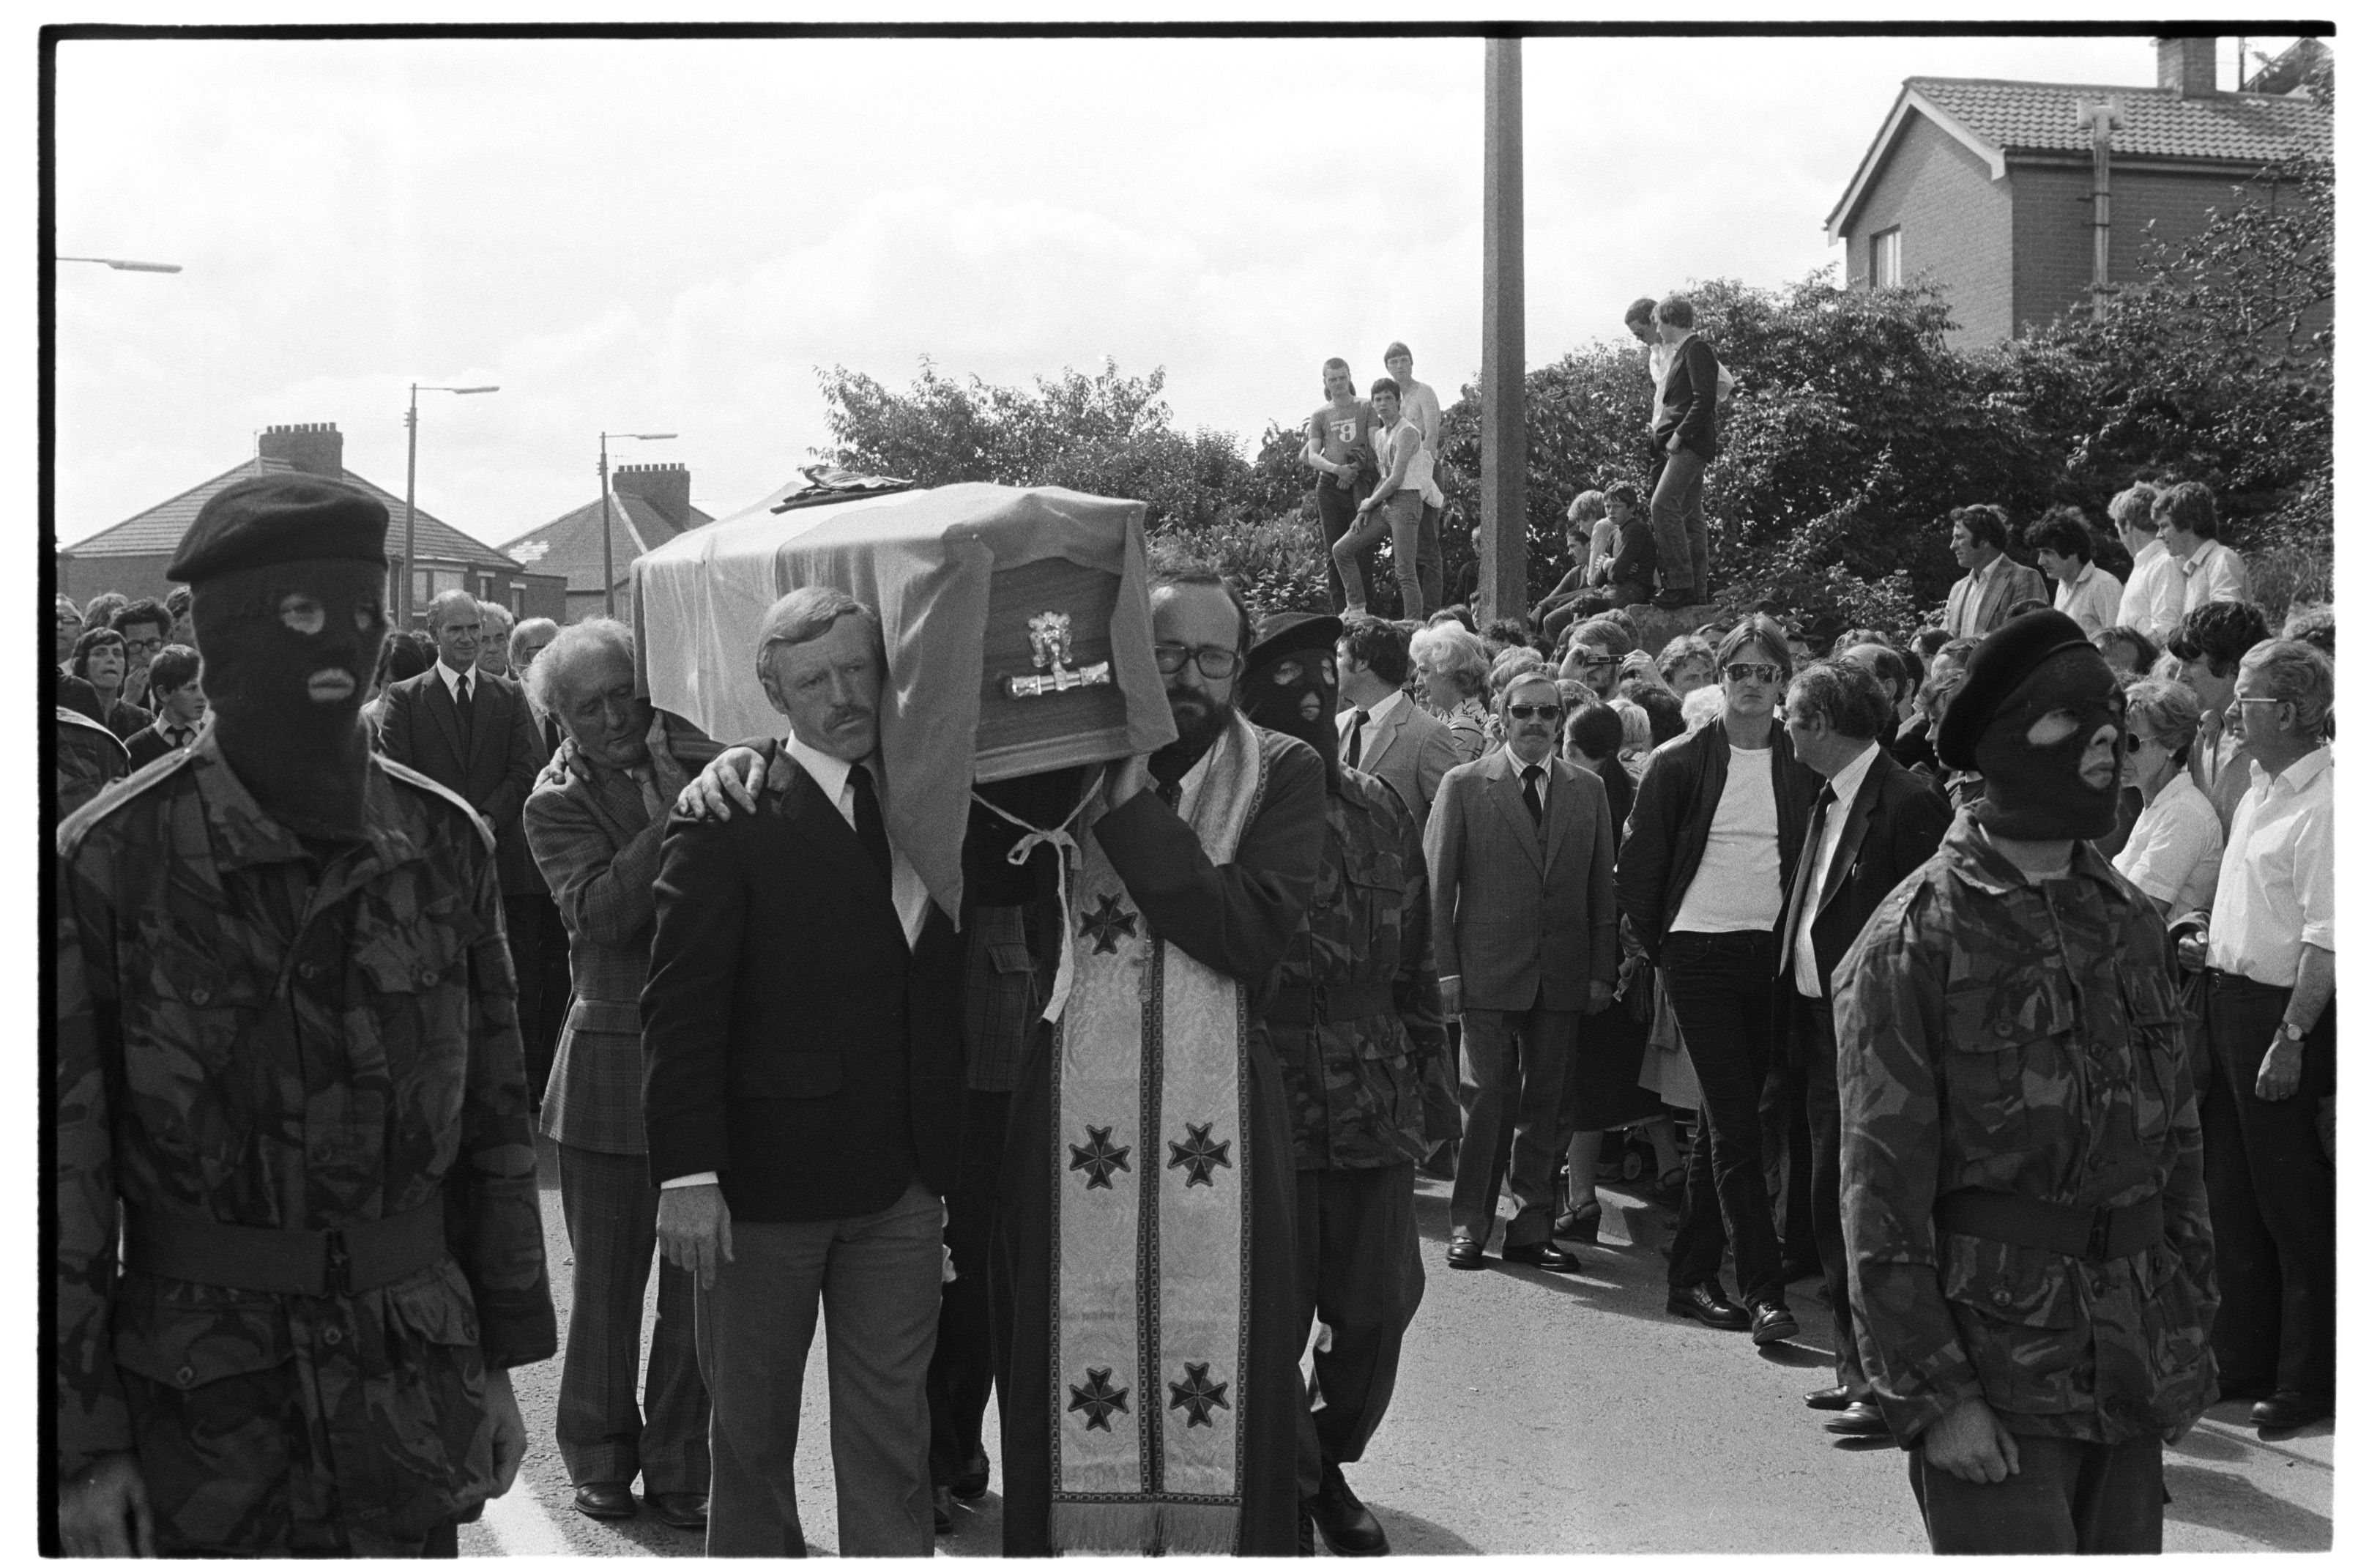 ÓMÓS: Monsignor Ó Ceallachain from Toronto helps shoulder Kieran Doherty's coffin.